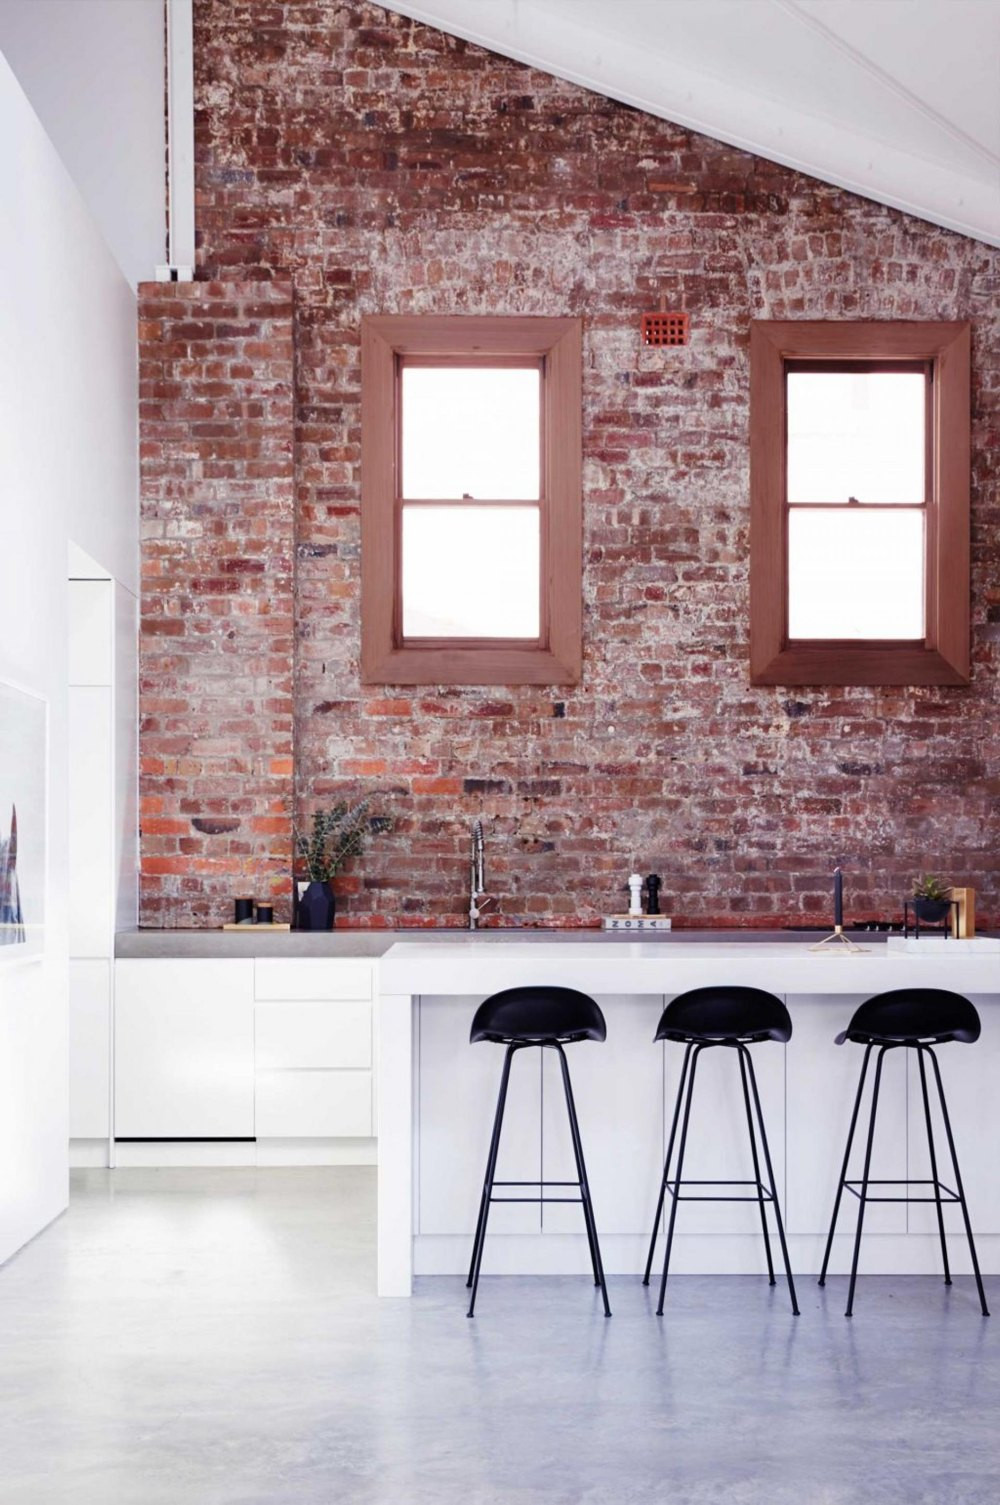 Best ideas about Kitchens With Brick Accent Walls . Save or Pin 19 Stunning Interior Brick Wall Ideas Now.